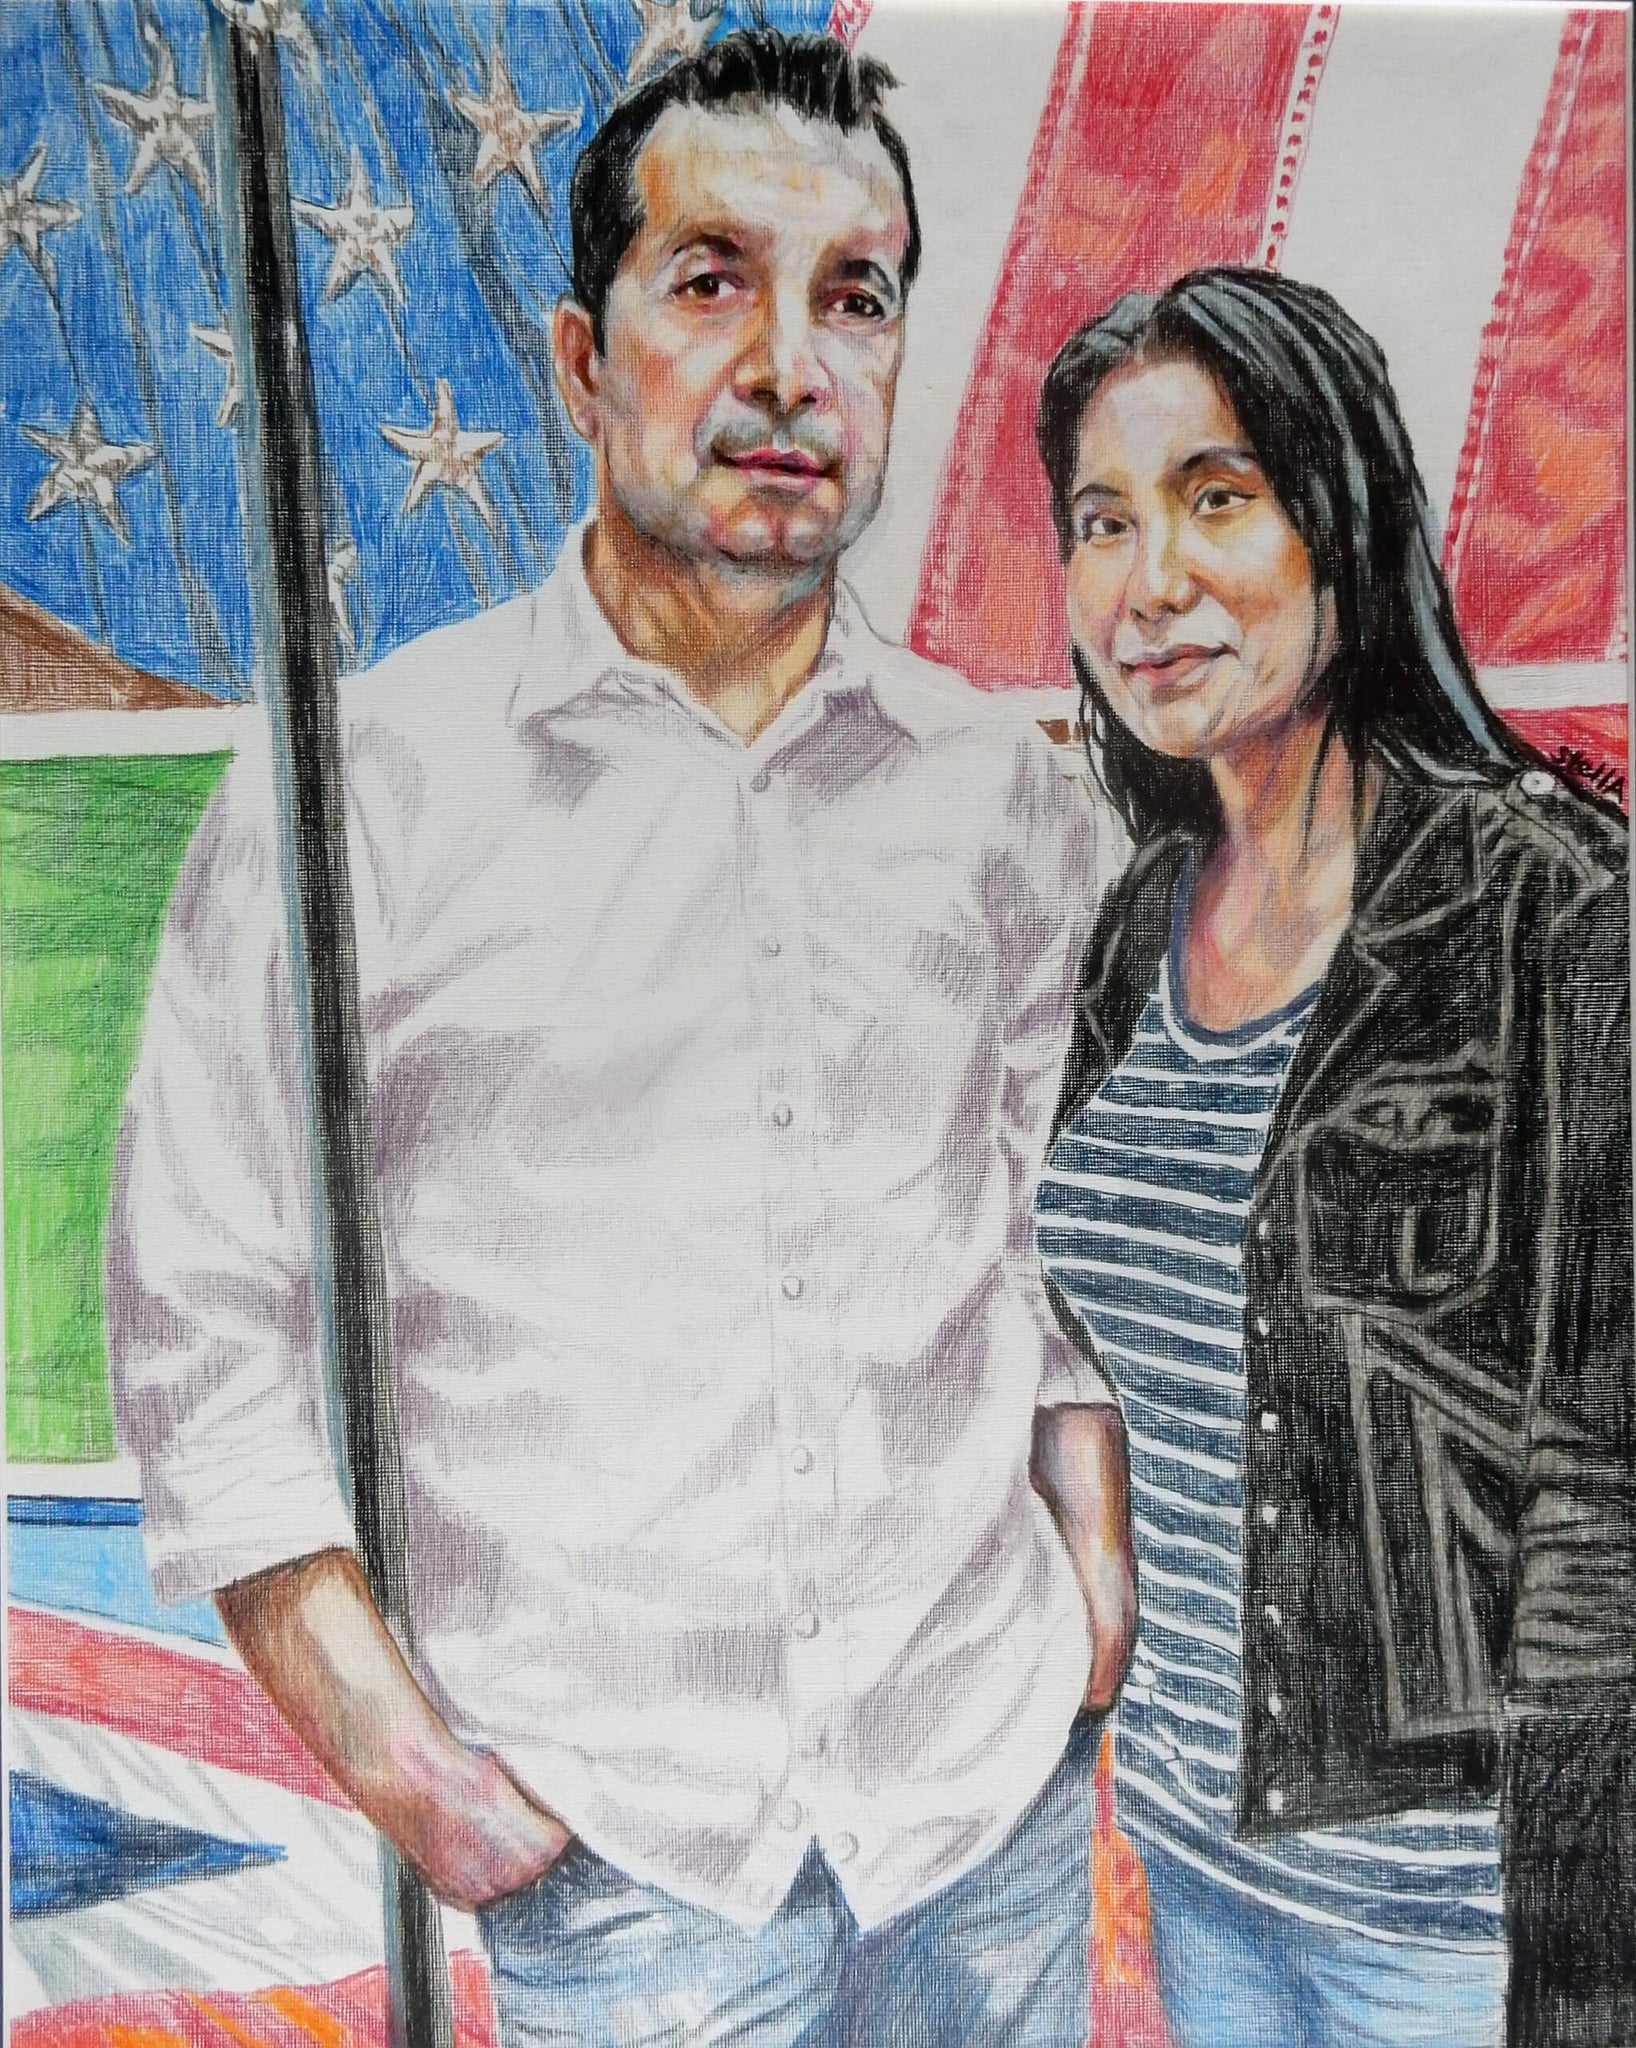 Marco Brandolini and Jennifer Lee pencil on paper artwork by Stella Tooth